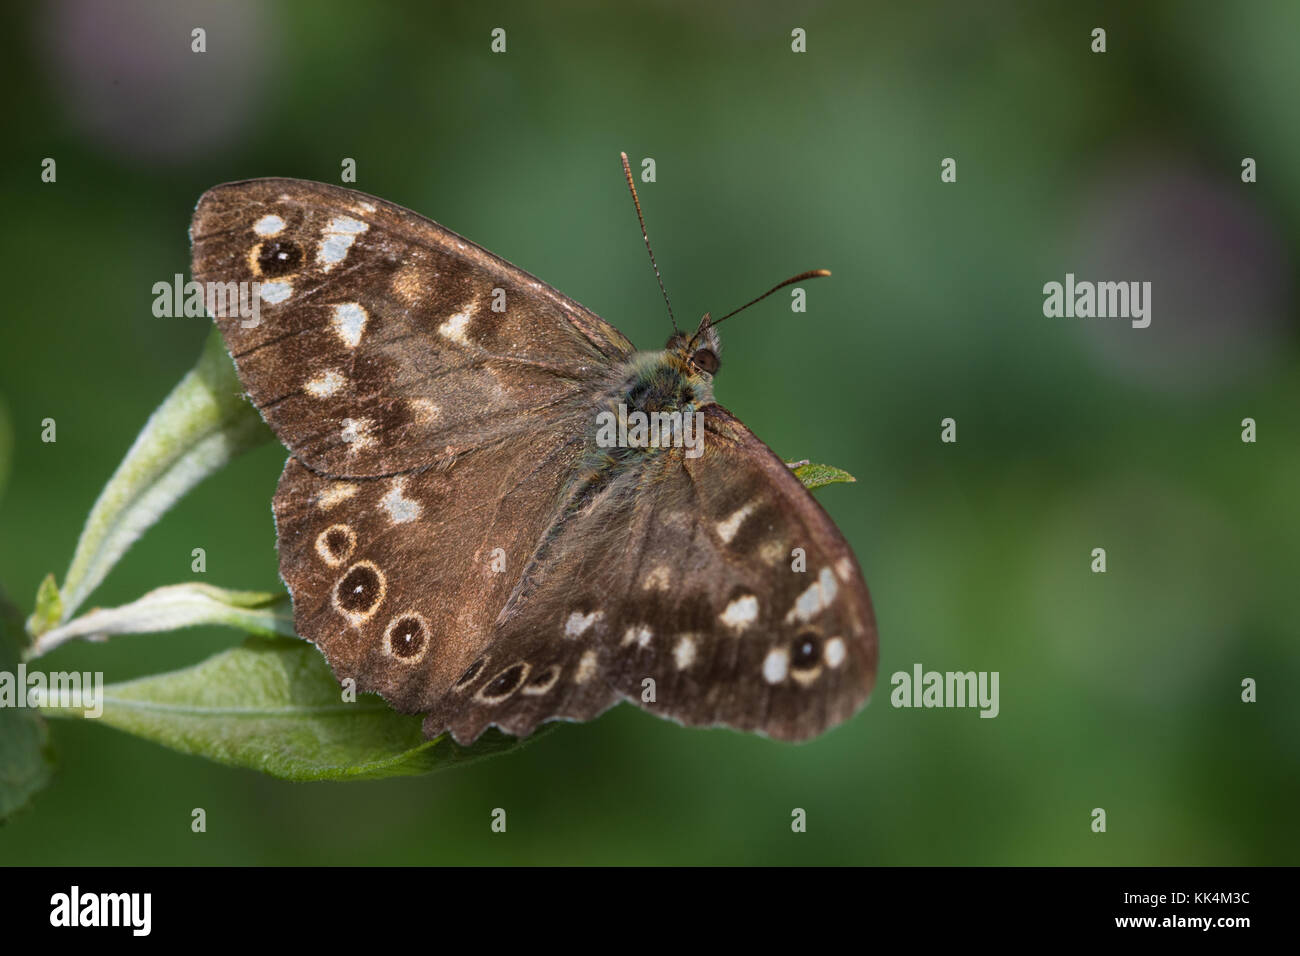 Speckled Wood (Pararge aegeria) butterfly resting on a leaf - Stock Image